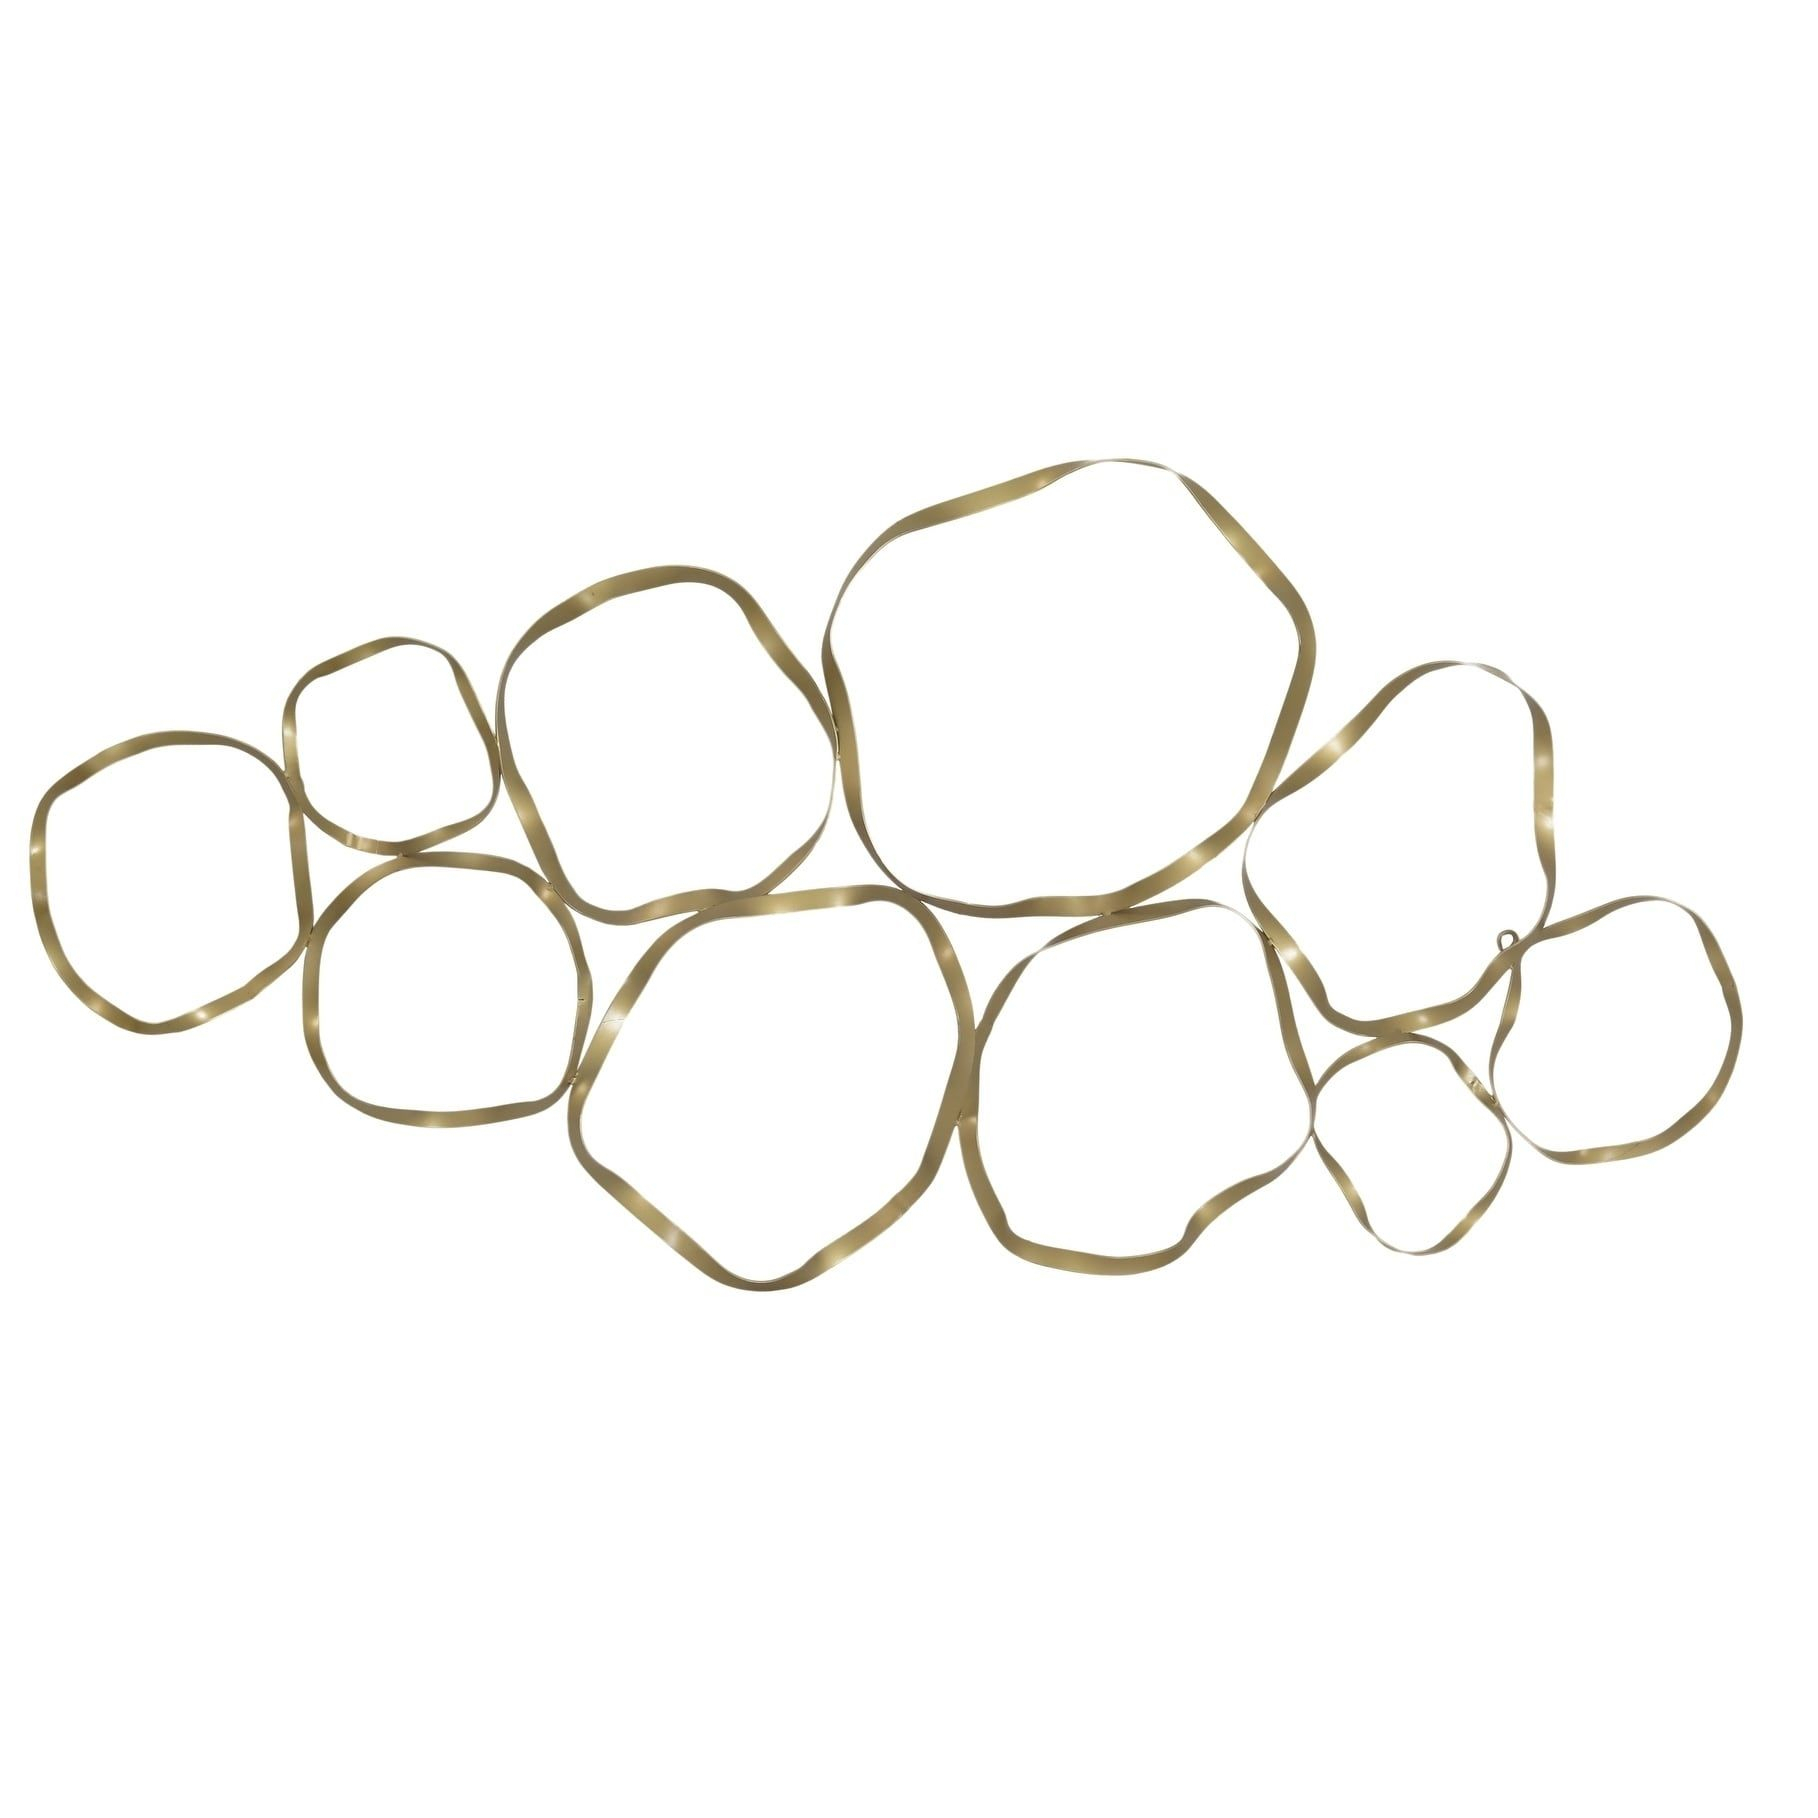 Aurelle Home Euclid Gold Metal (grey) Wall Art | Products Within Rioux Birds On A Wire Wall Decor (View 14 of 30)